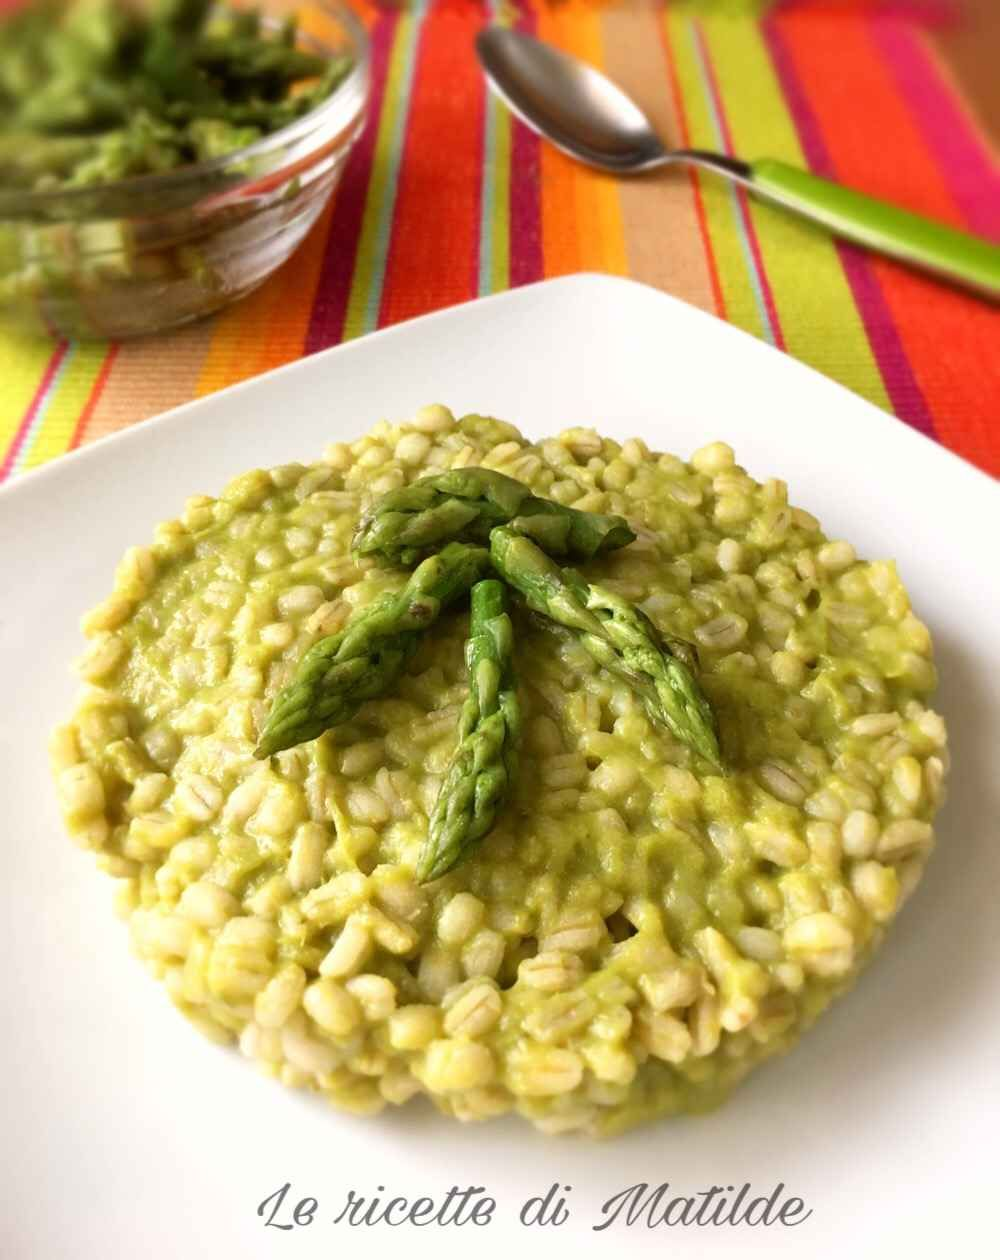 54344d74d67d3943c9cb2f4ddb62be40 - Ricette Con Orzo